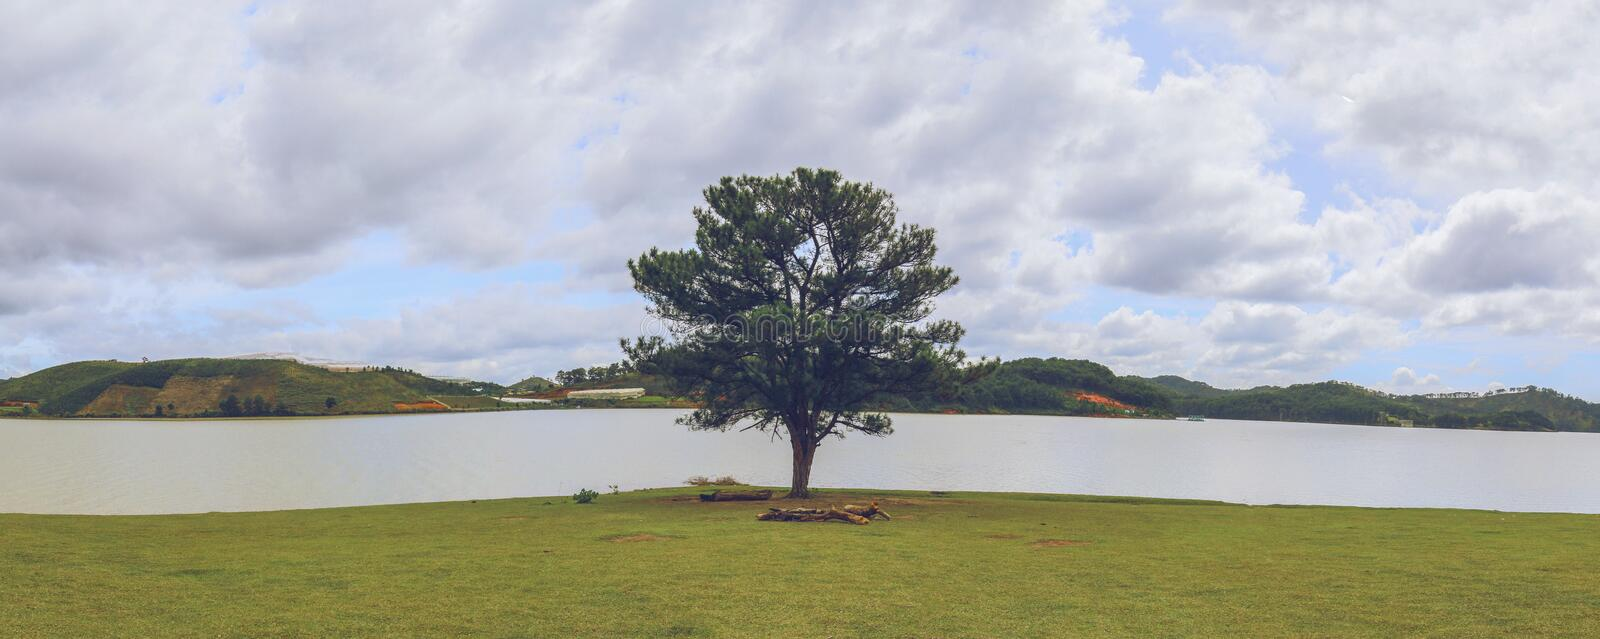 The lonely tree. It is alone on Lake Dankia - Suoi Vang was discovered and named by photographers specializing in landscape photography in Da Lat for many years royalty free stock images